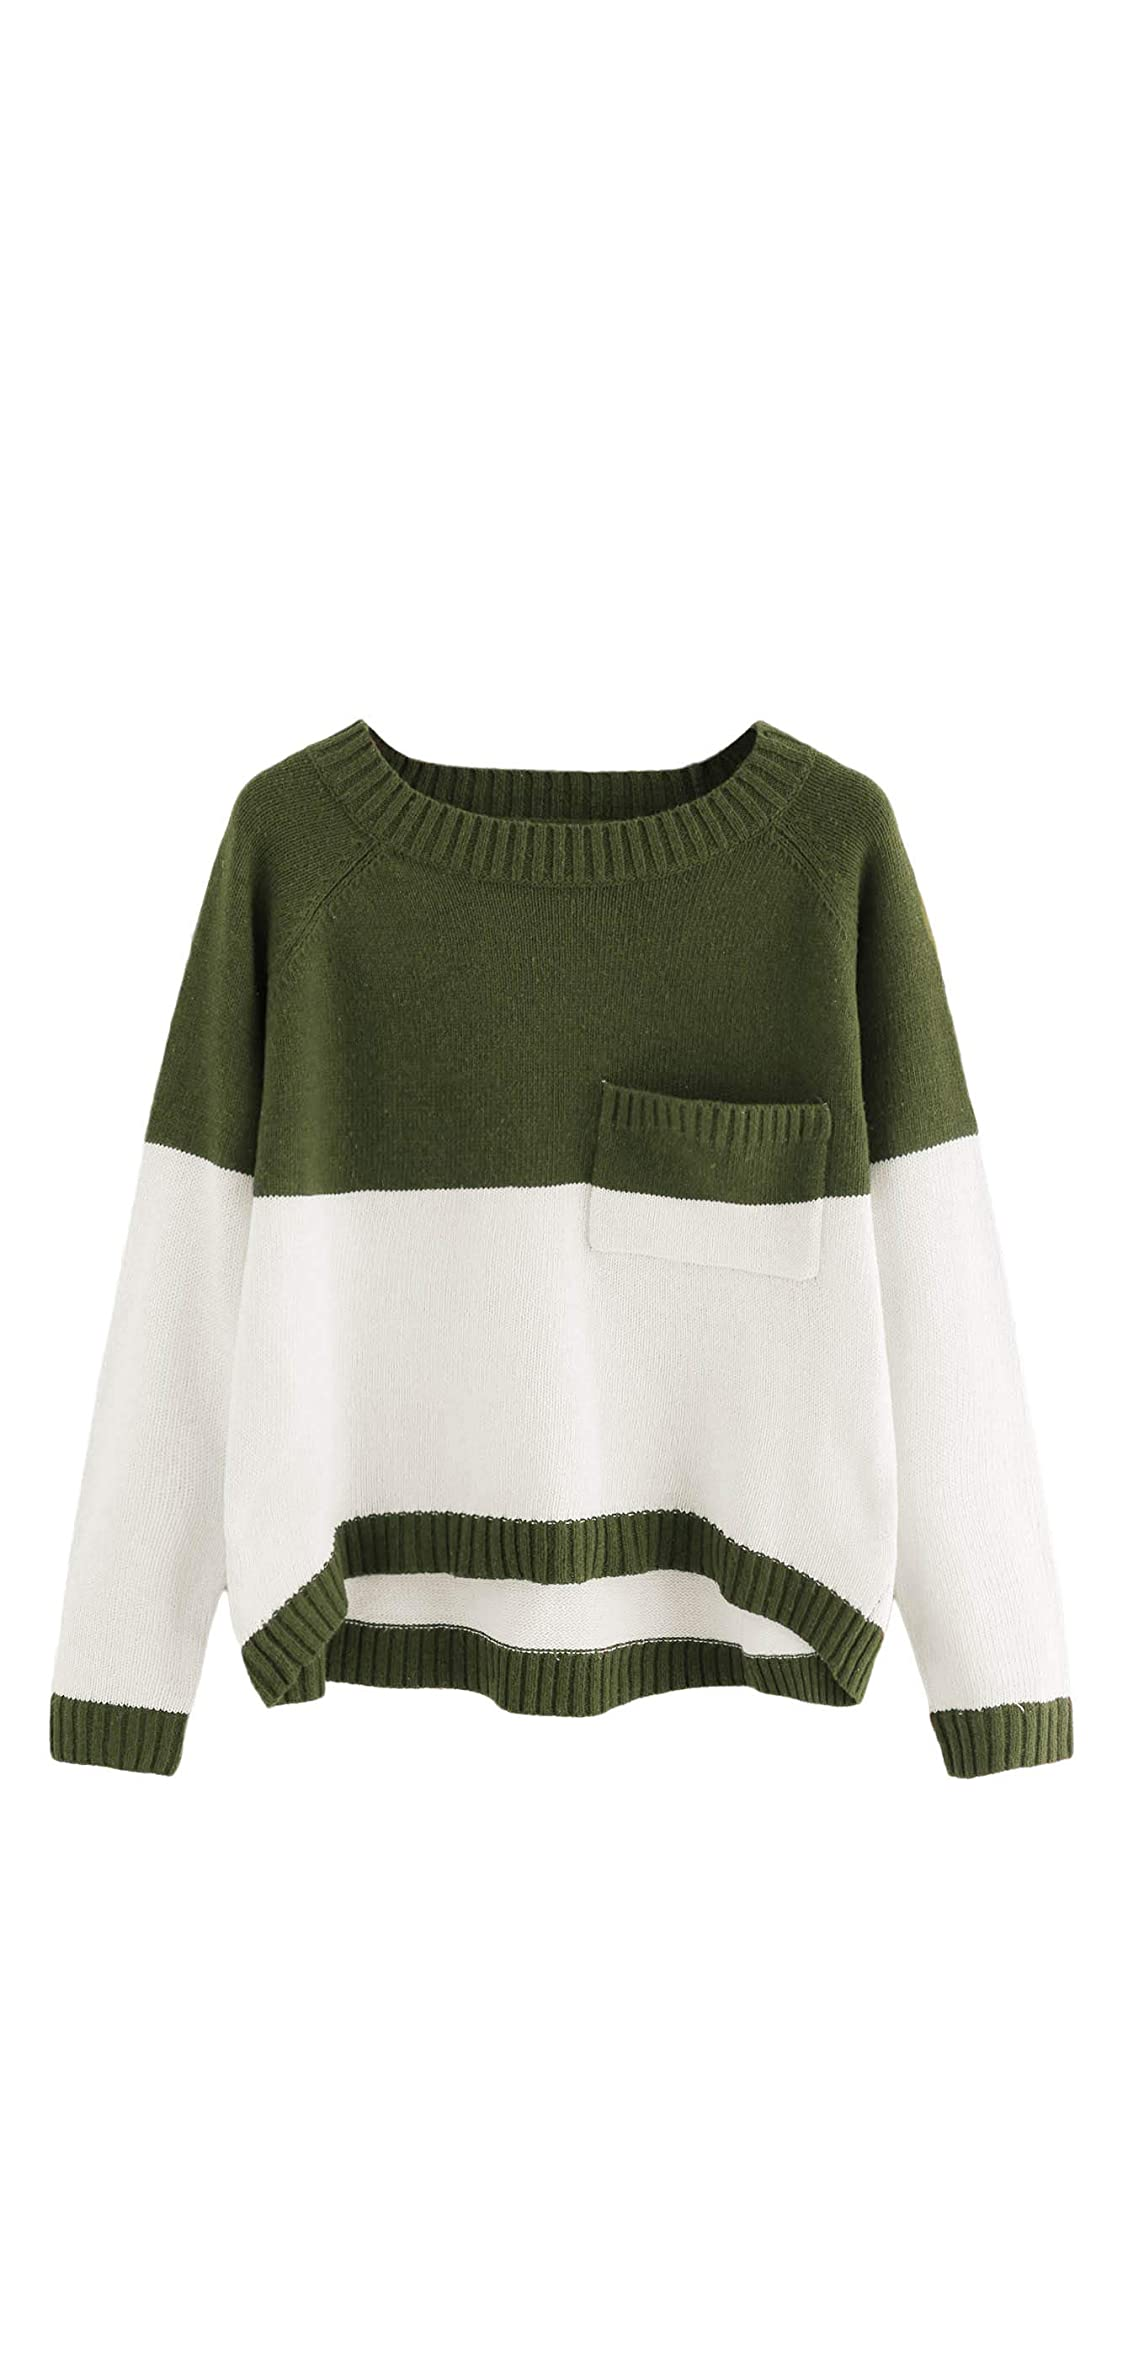 Women's Two Tone Marled Knit High Low Sweater